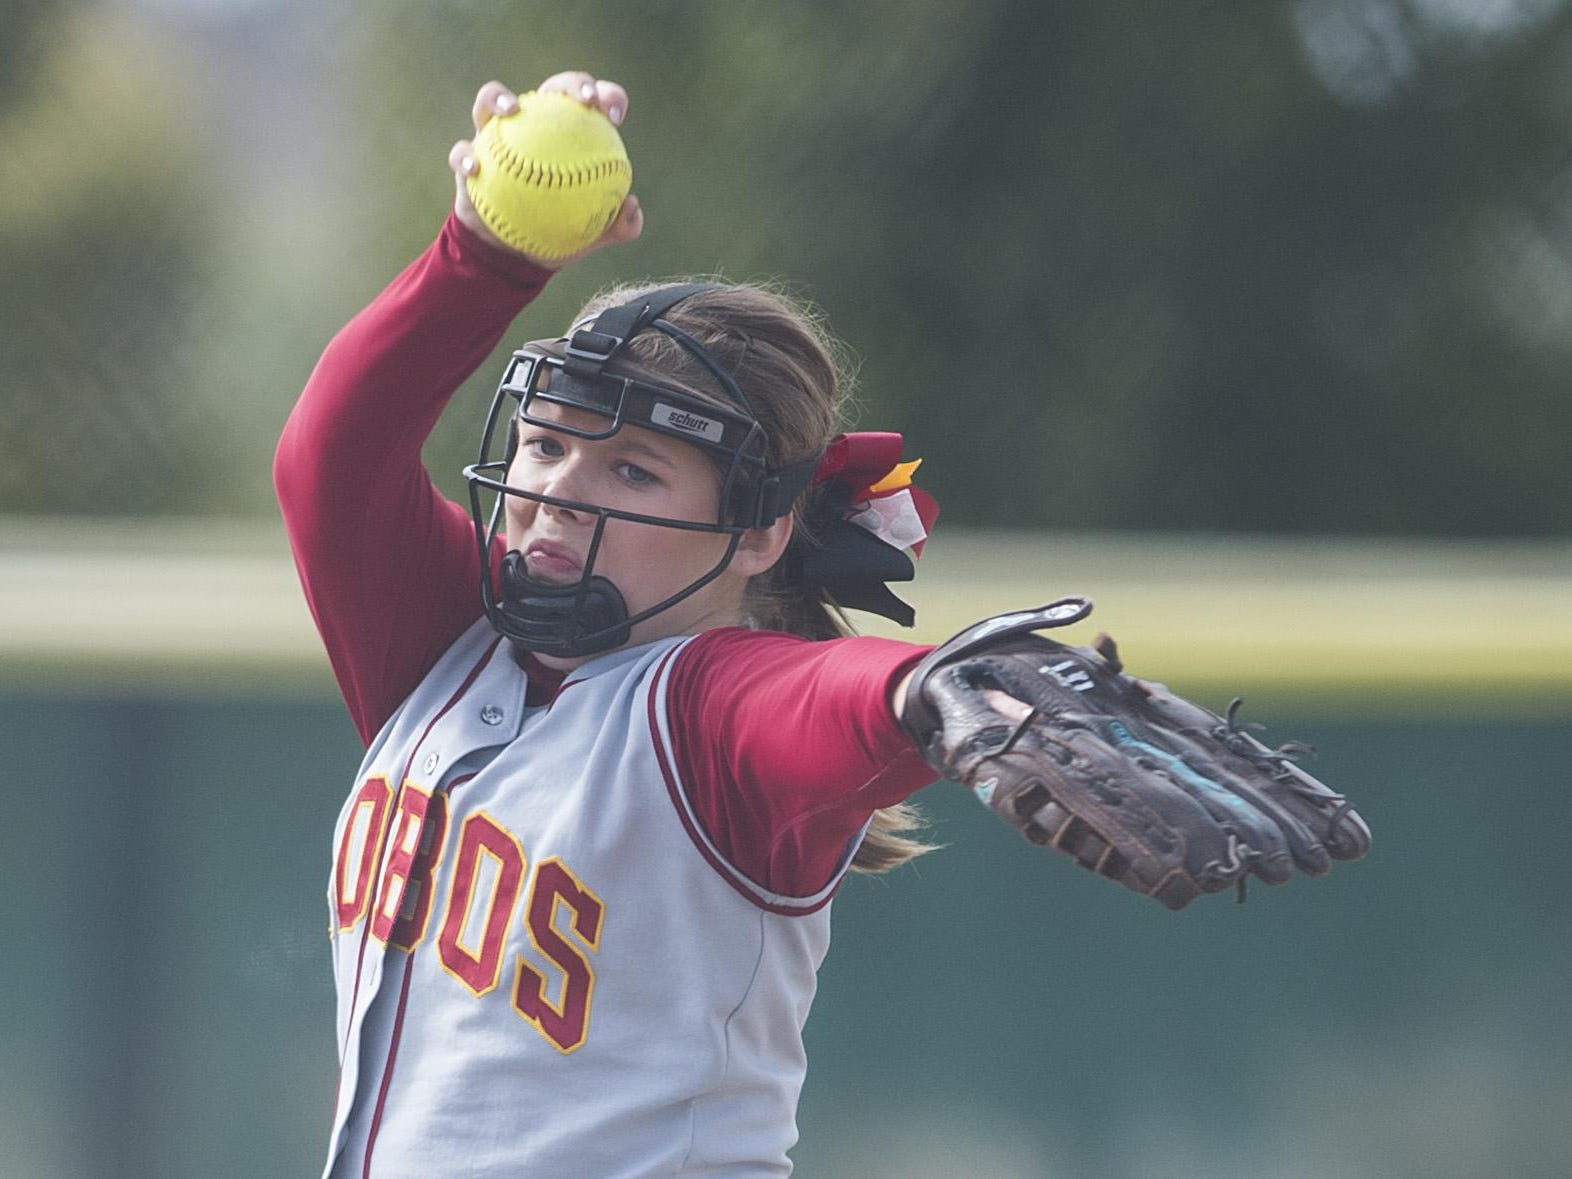 Rocky Mountain pitcher Kelly Schueler delivers the ball to a Fossil Ridge batter during a game at Fossil Ridge High School Saturday, October 3, 2015. The Lobos defeated the SaberCats 7-1.